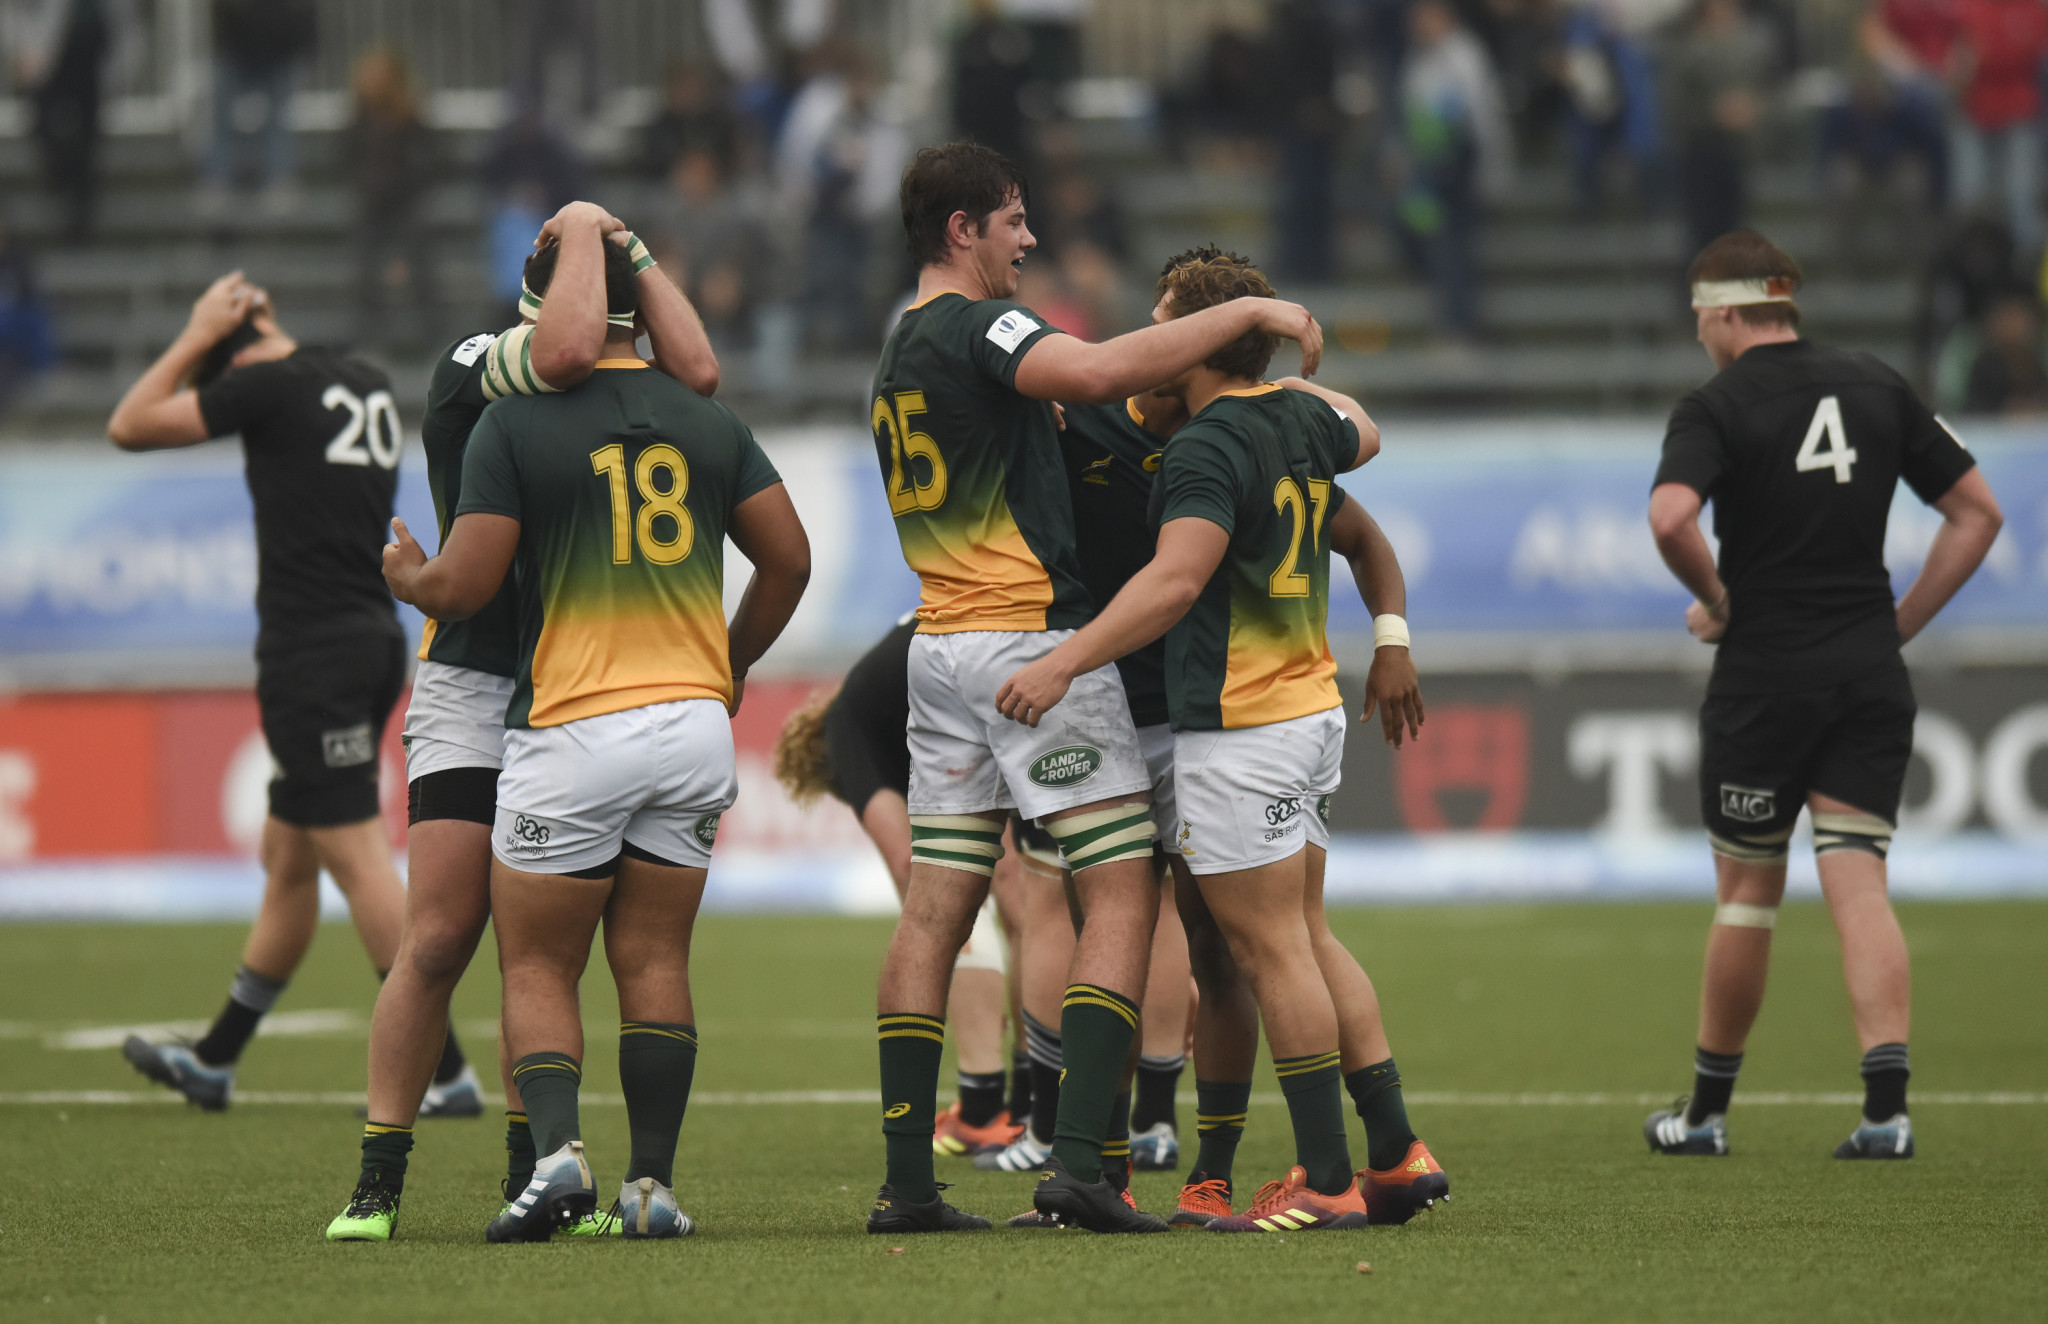 South Africa defeated New Zealand to win their pool as the Kiwis were knocked out ©Getty Images